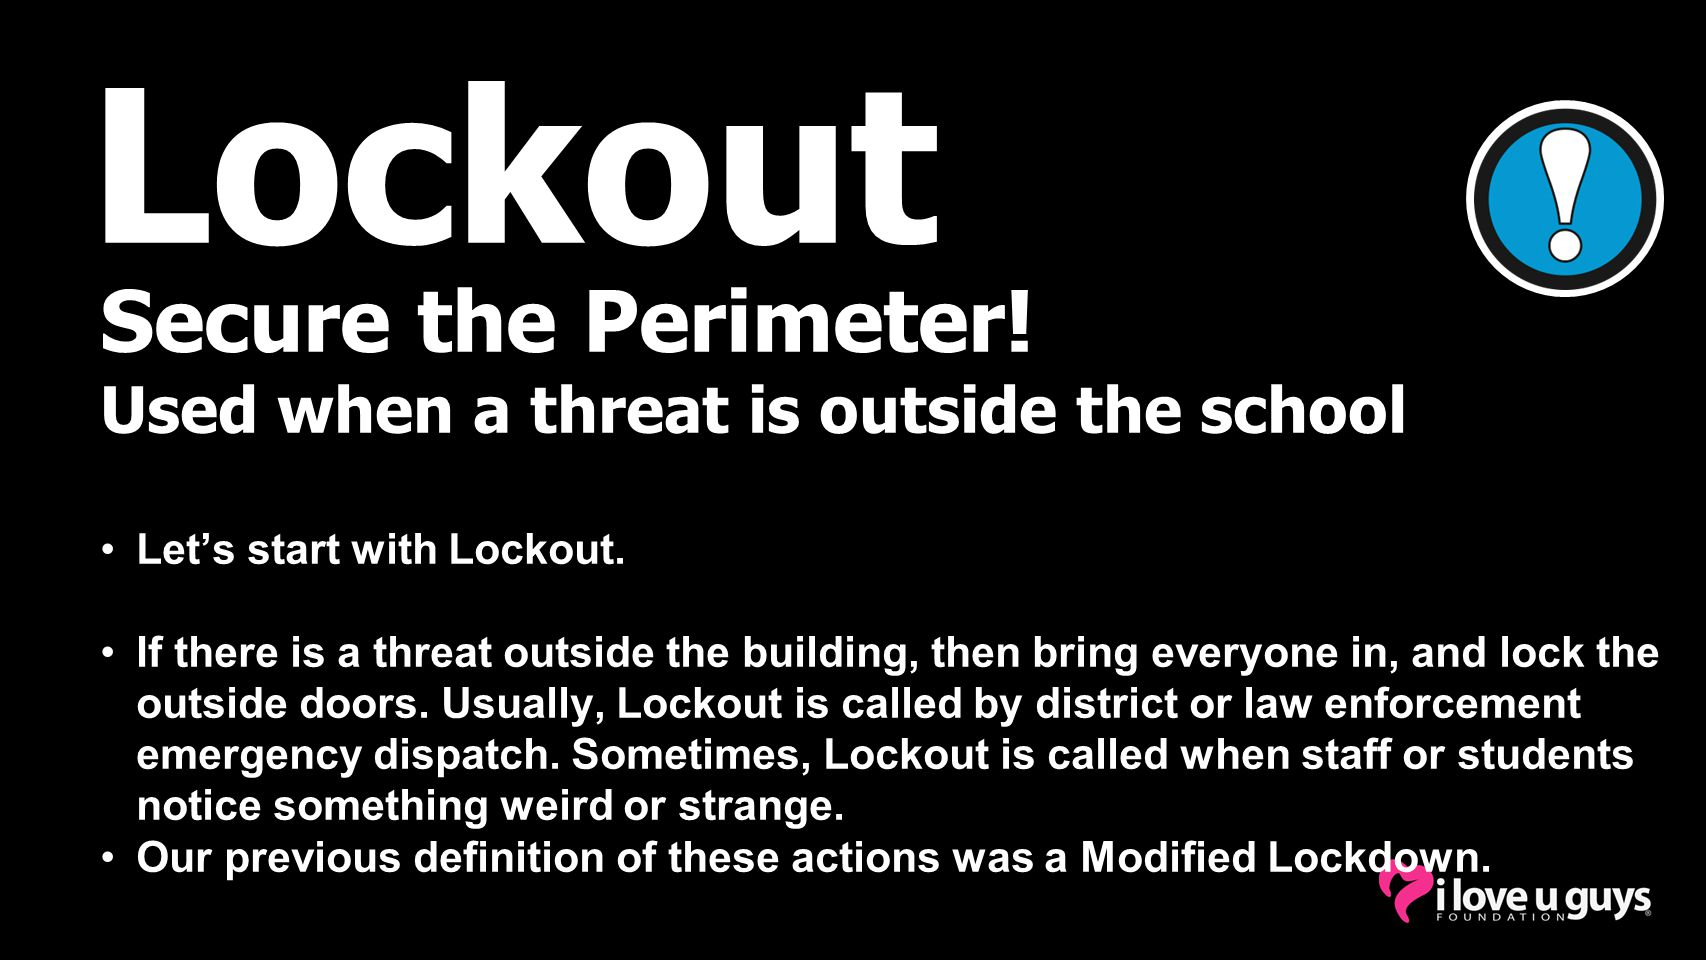 Lockout Secure the Perimeter! Used when a threat is outside the school